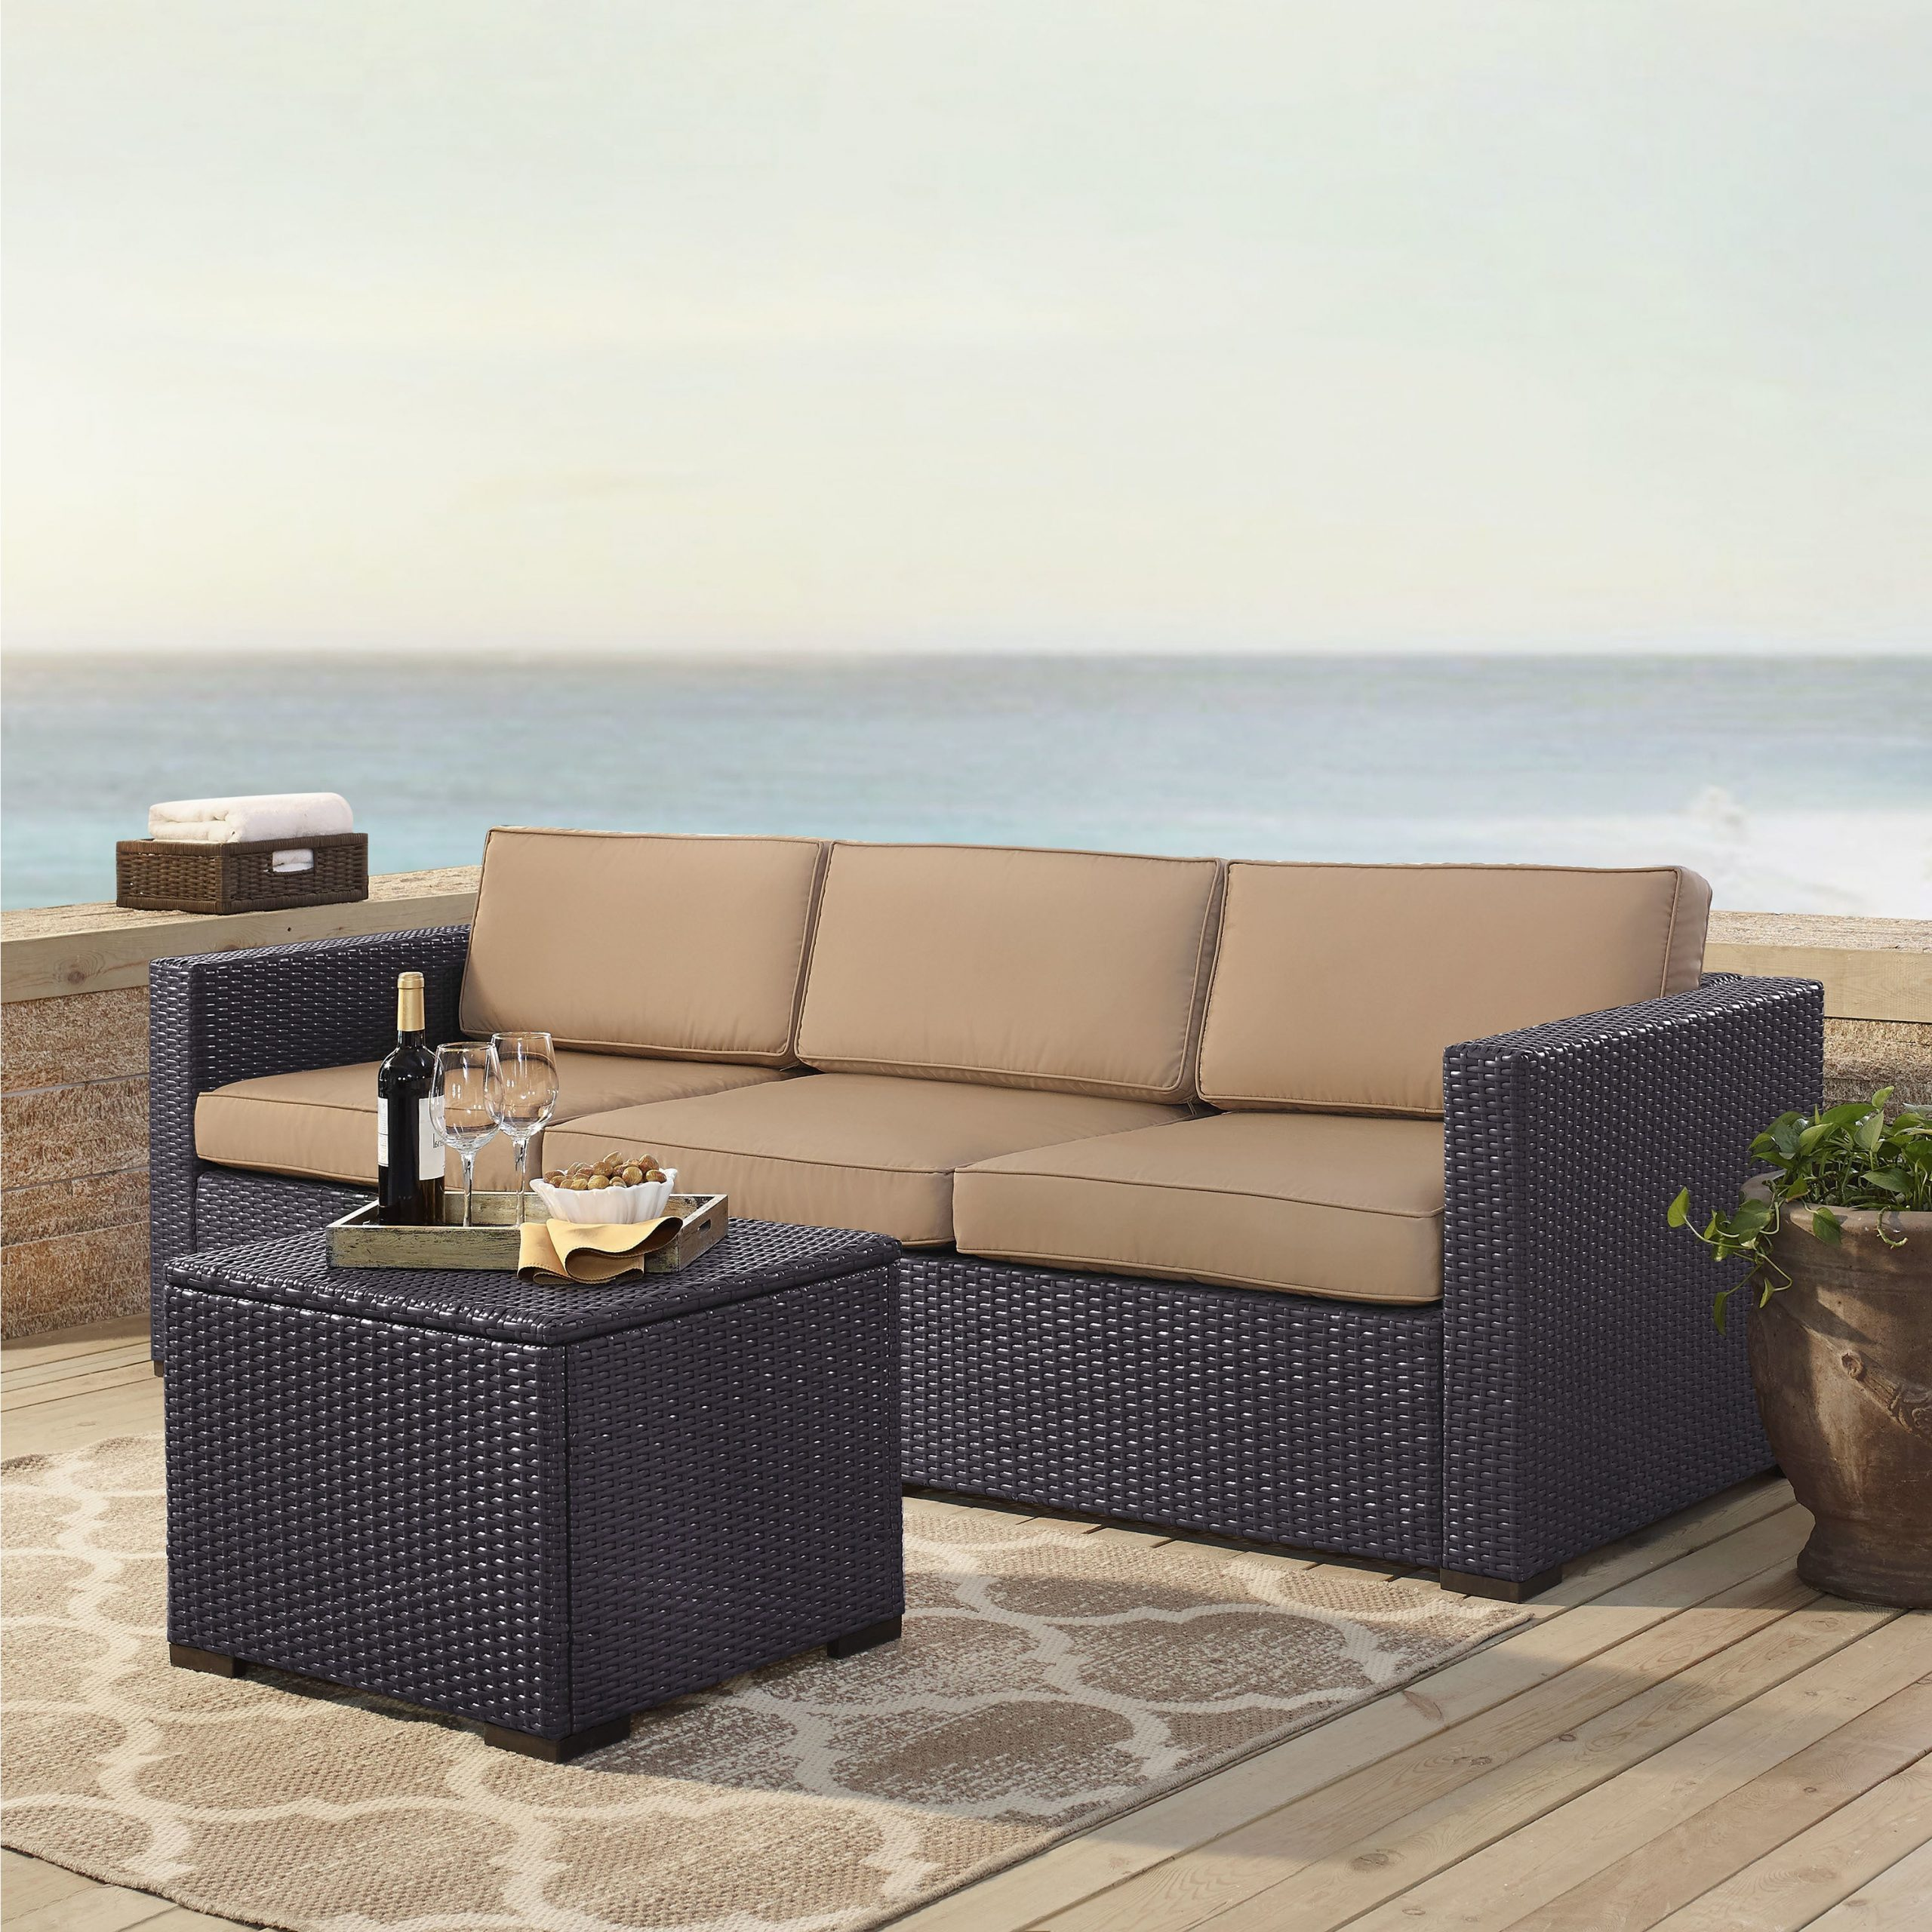 Well Known Deandra Loveseats With Cushions Inside Details About Biscayne Wicker 3 Piece Outdoor Seating Set With Mocha Brown  2 Piece Sets (View 20 of 25)